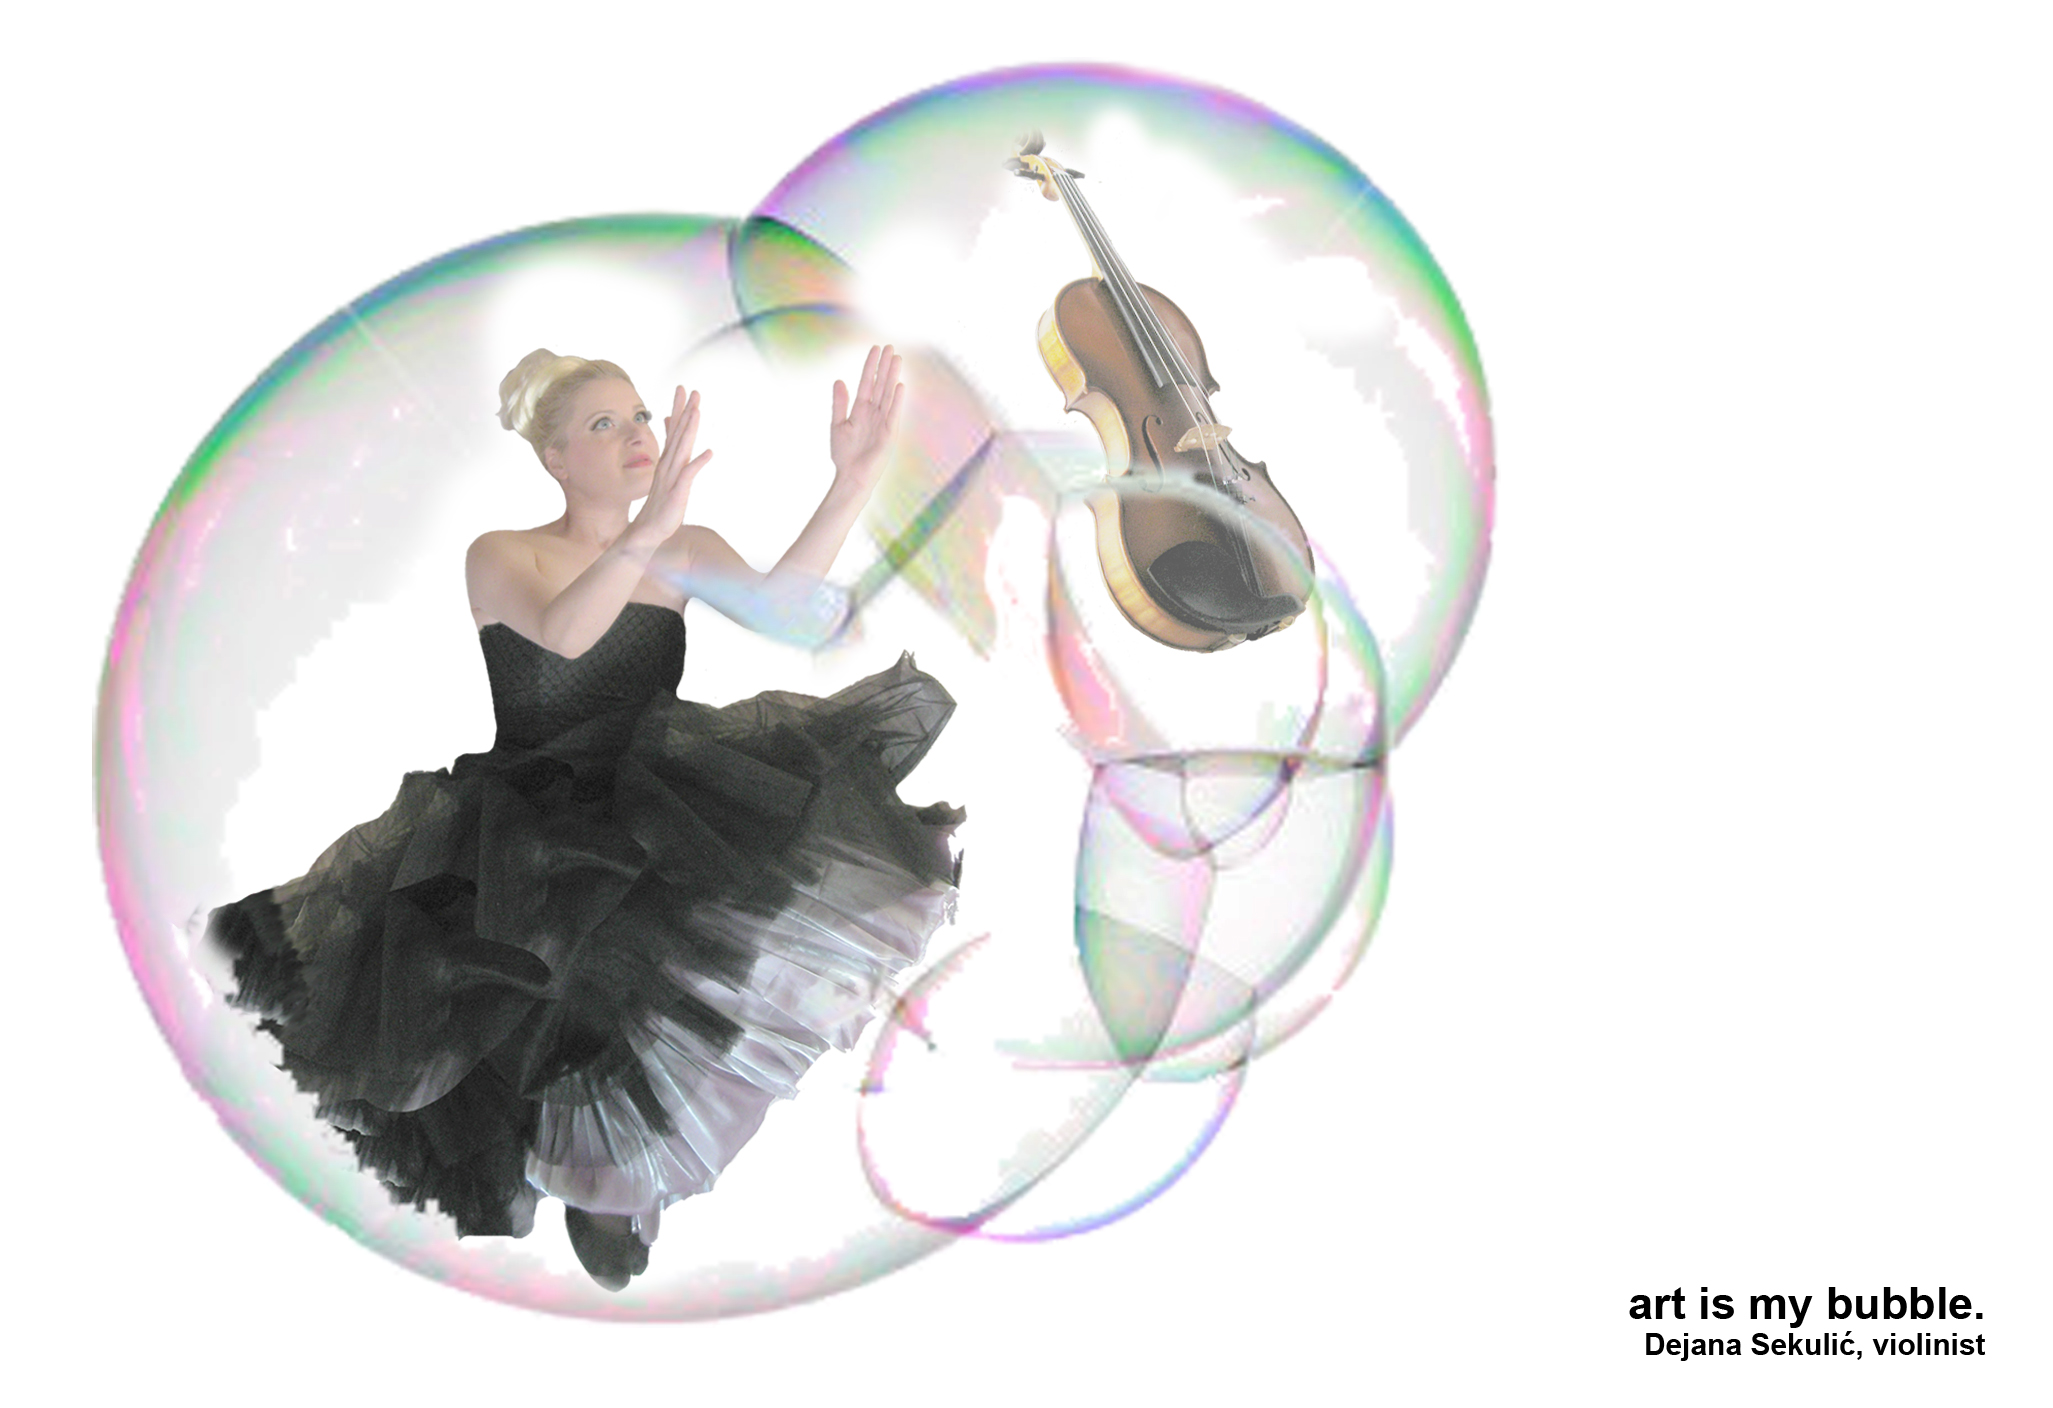 art is my bubble